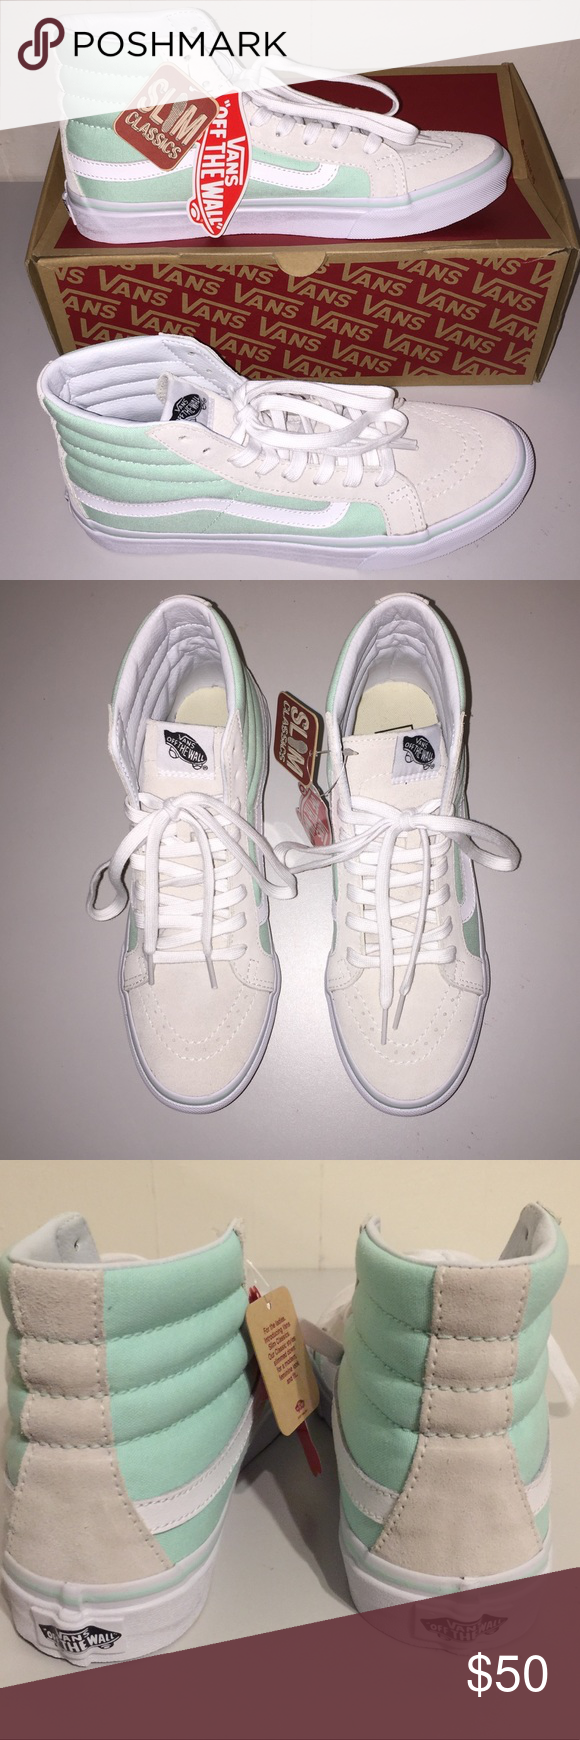 d5164316a8dd7b NWT Vans SK8-Hi Slim Bay True White Very pretty and cool mint green color. Vans  Shoes Sneakers